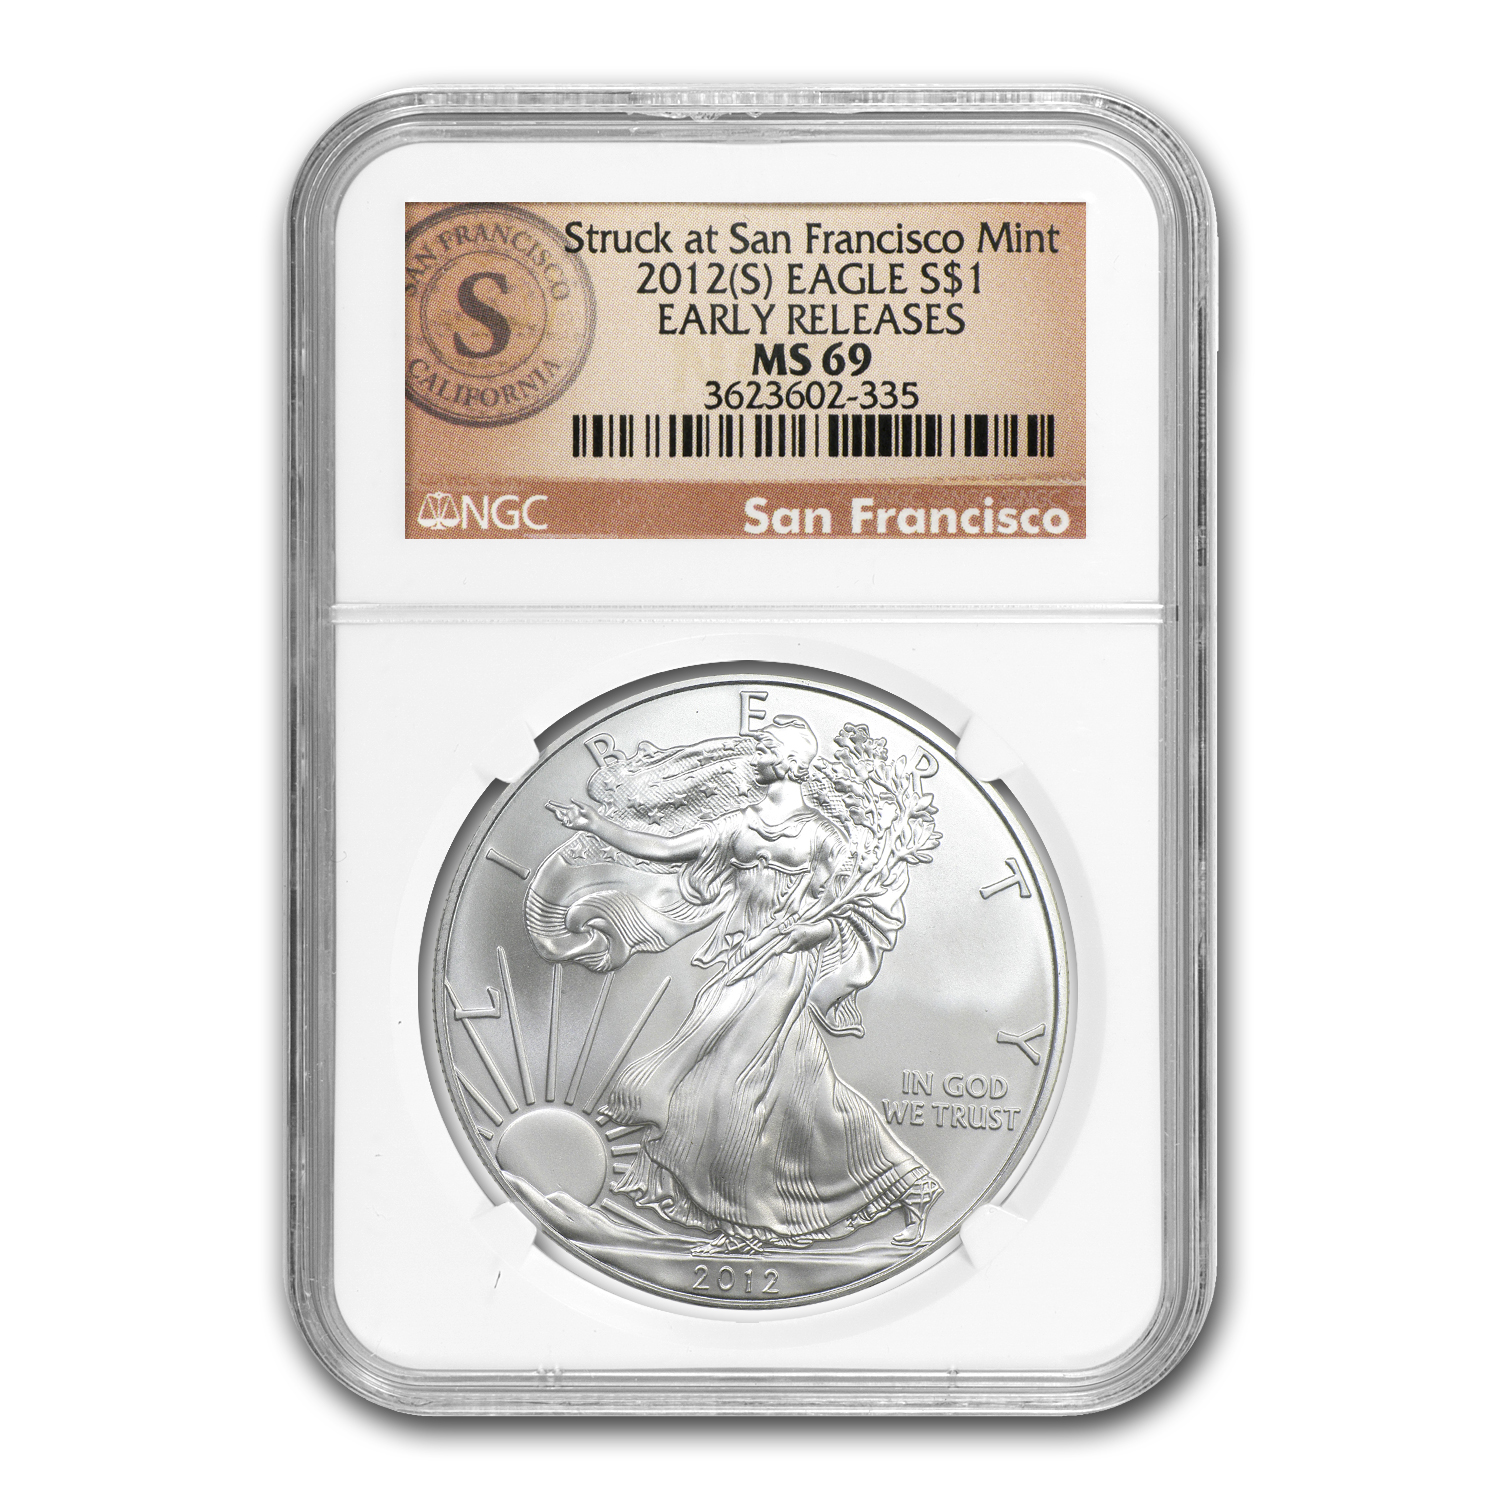 2012 (S) Silver American Eagle - MS-69 NGC - Early Releases